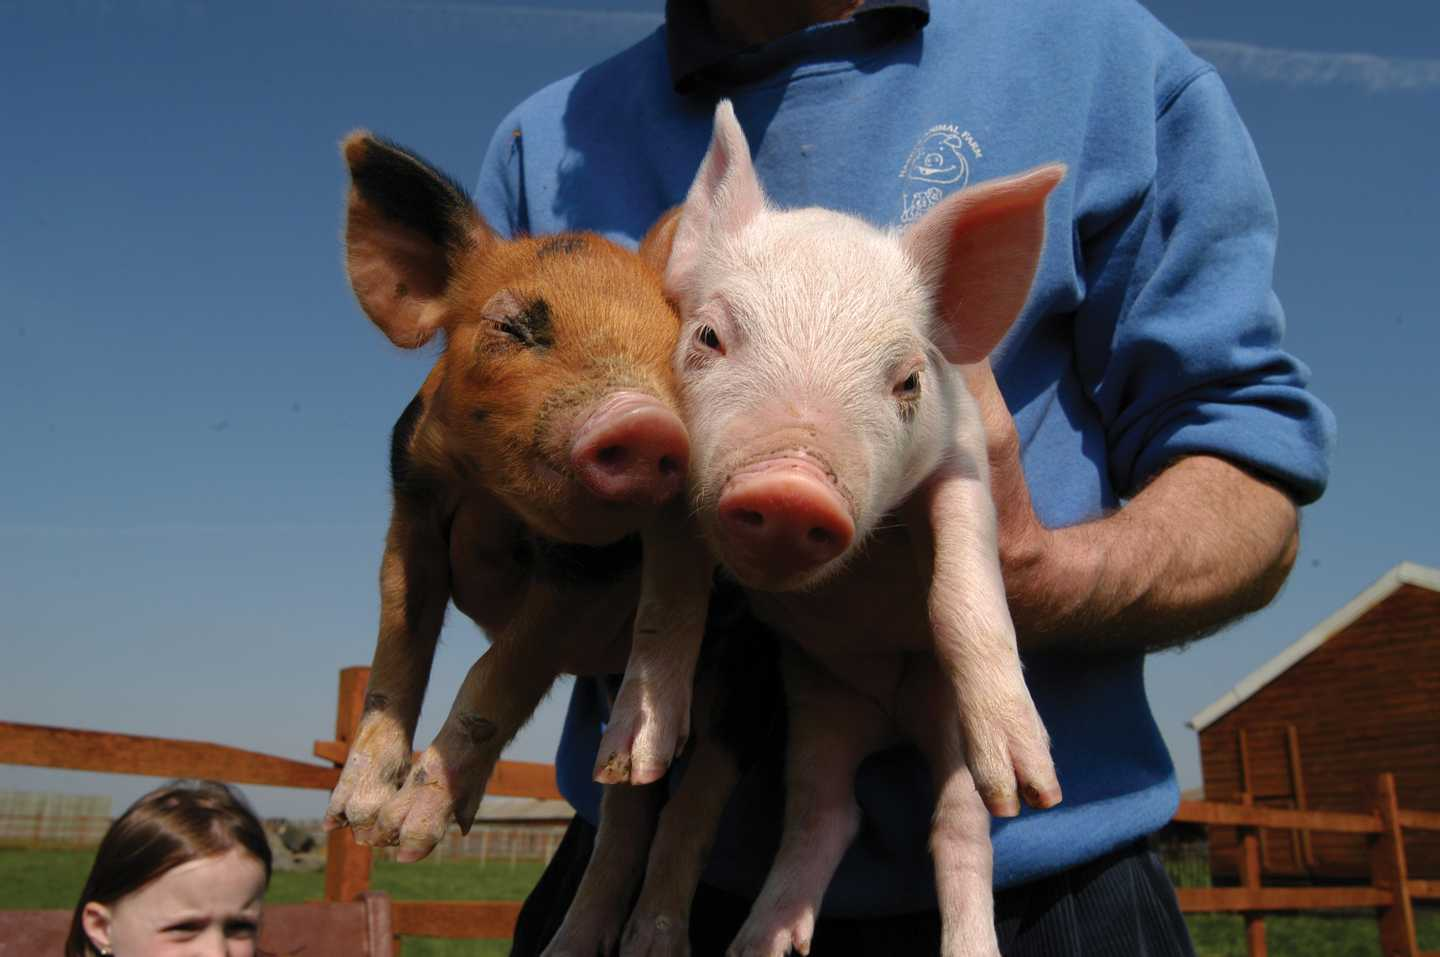 Farmer holding two pigs